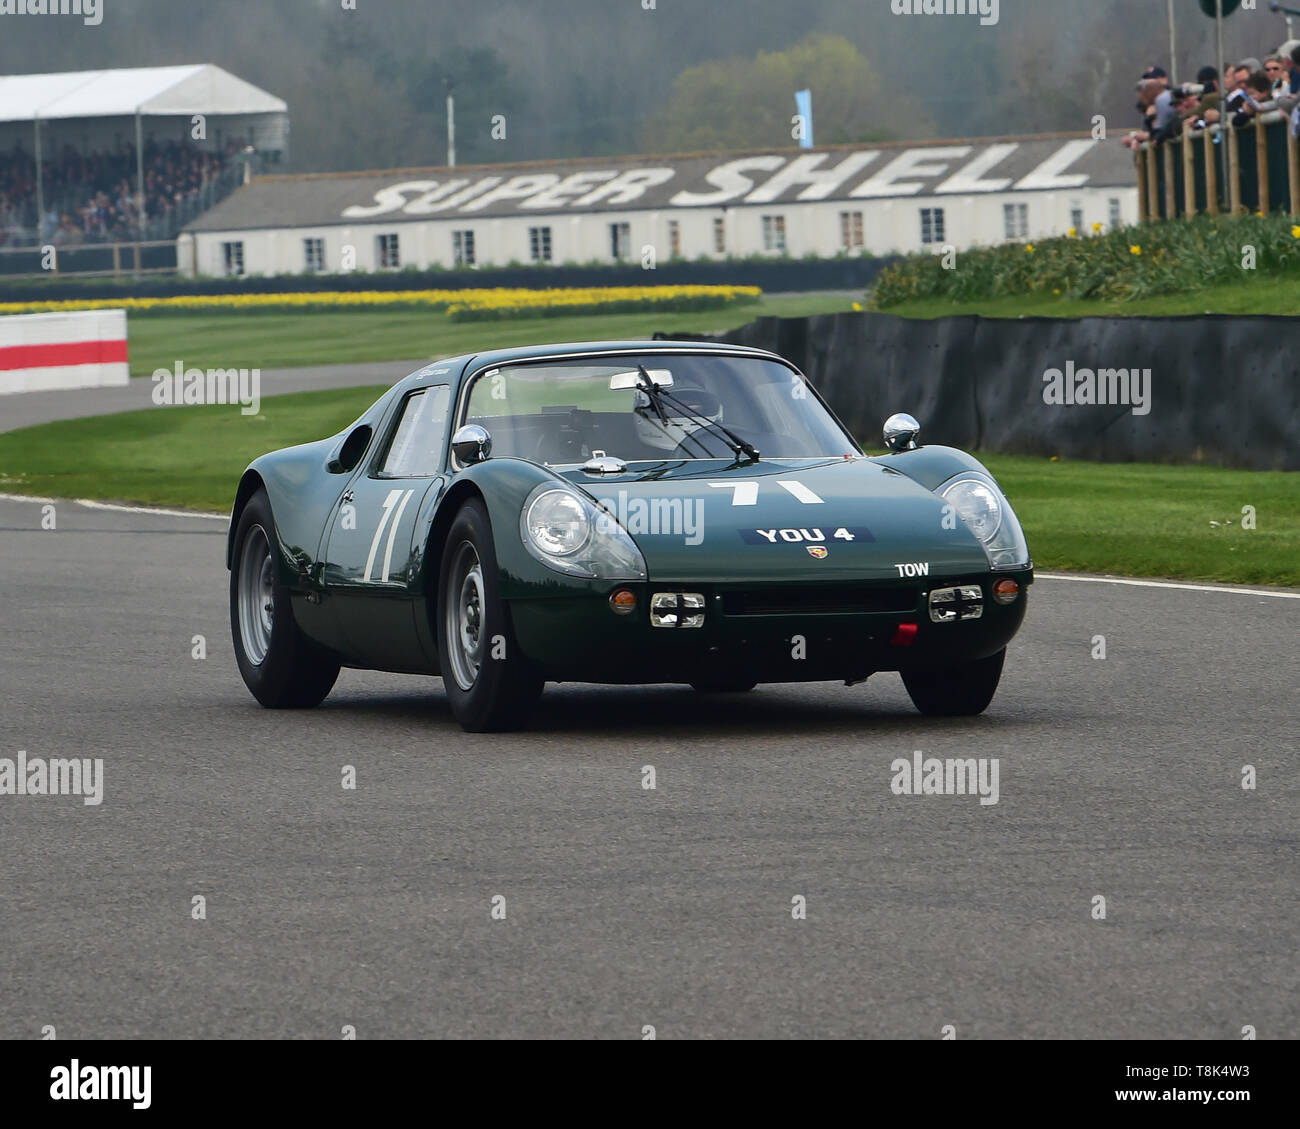 Stuart Graham, Jason Barron, Porsche 904 Carrera GTS, Graham Hill Trophy, Closed cockpit GT cars, Prototype cars, Spirit of the RAC TT Races 1960-1964 - Stock Image